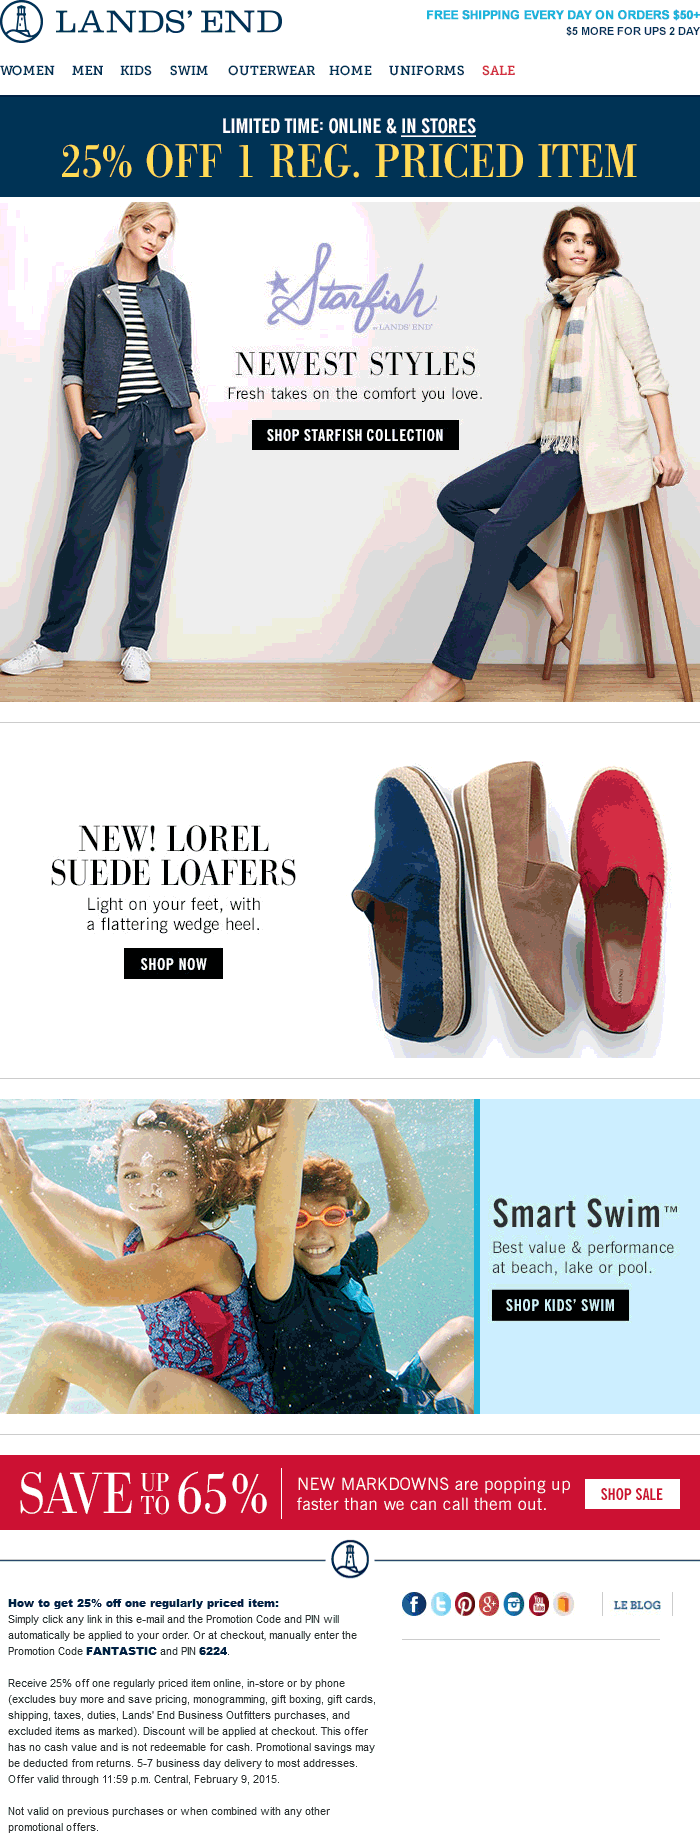 Lands End Coupon November 2017 25% off a single item at Lands End, or online via promo code FANTASTIC and pin 6224